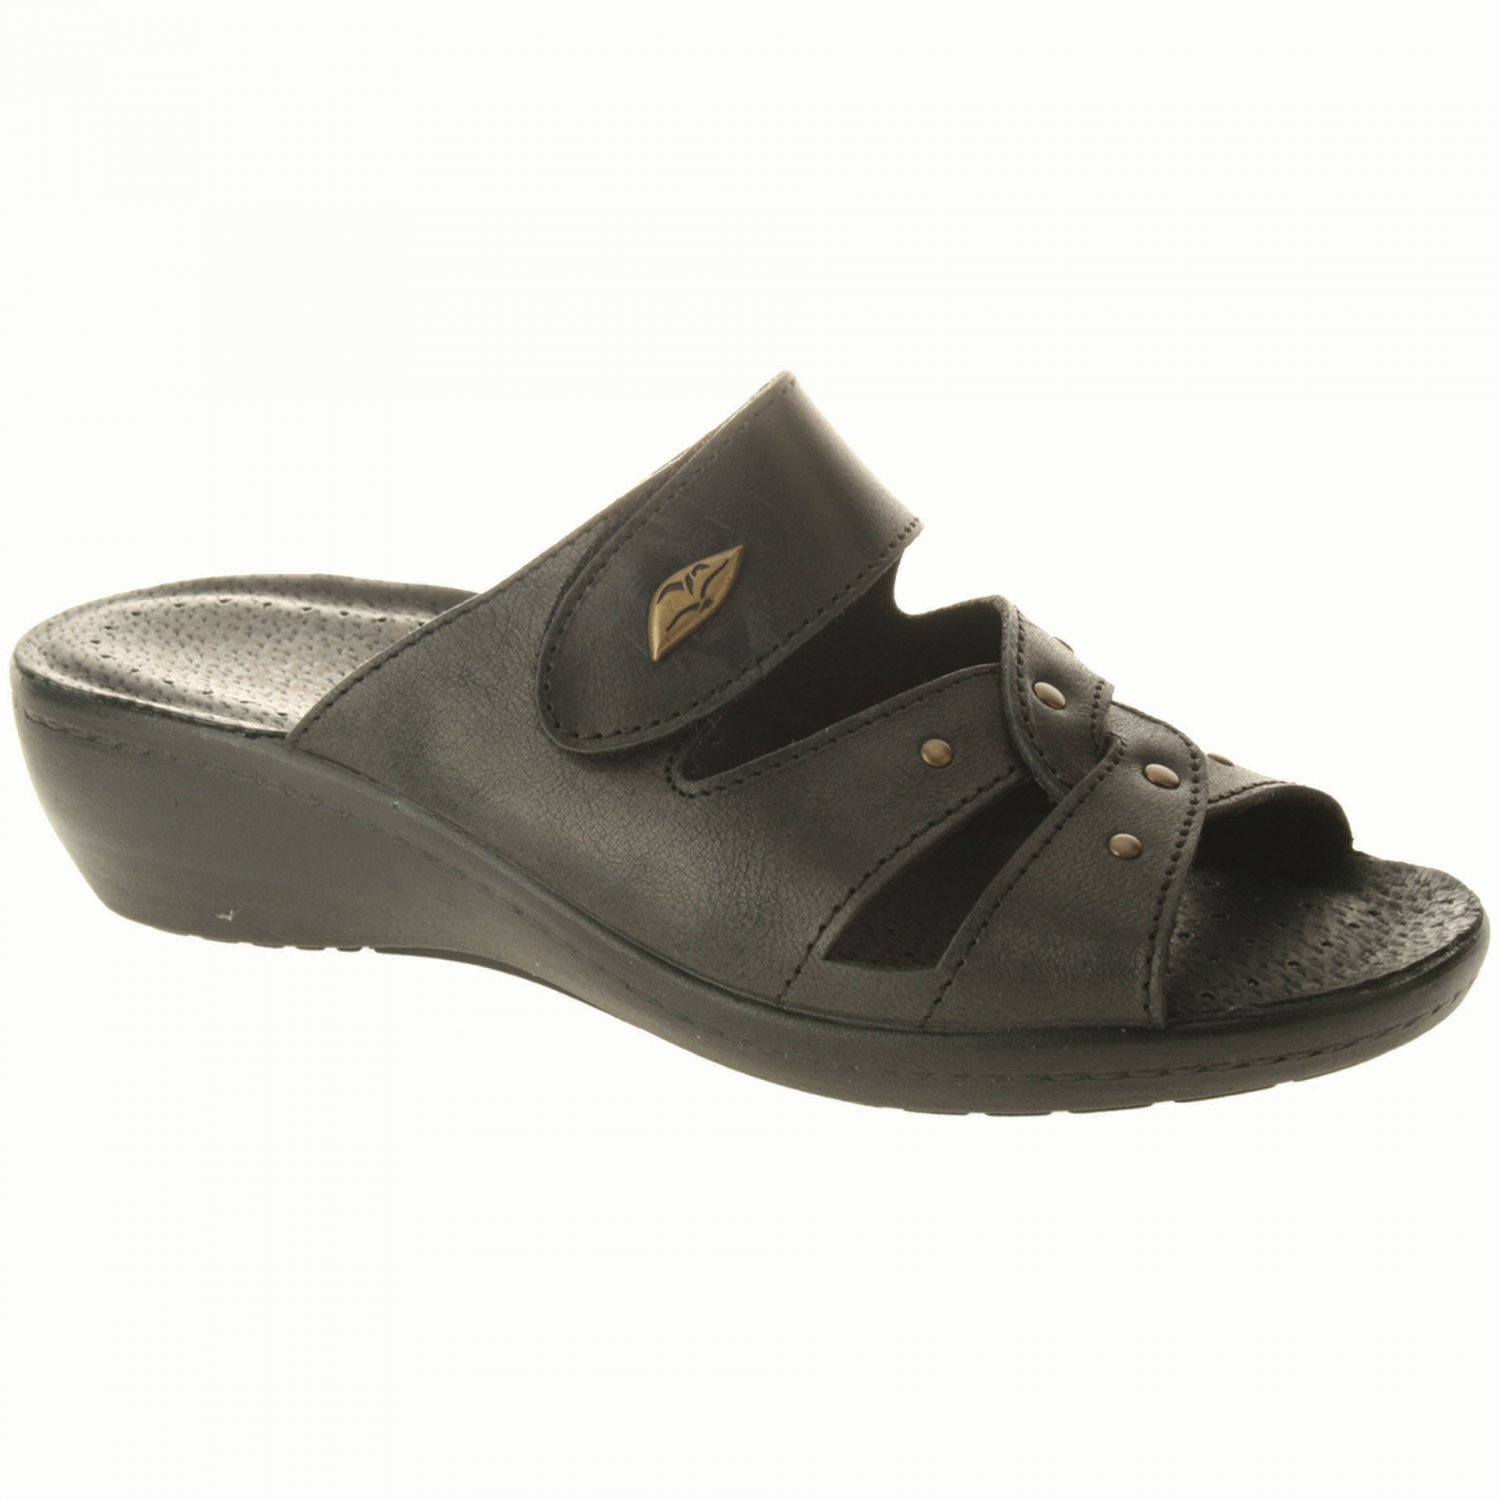 FLY FLOT MOON Sandals Shoes All Sizes & Colors $69.99